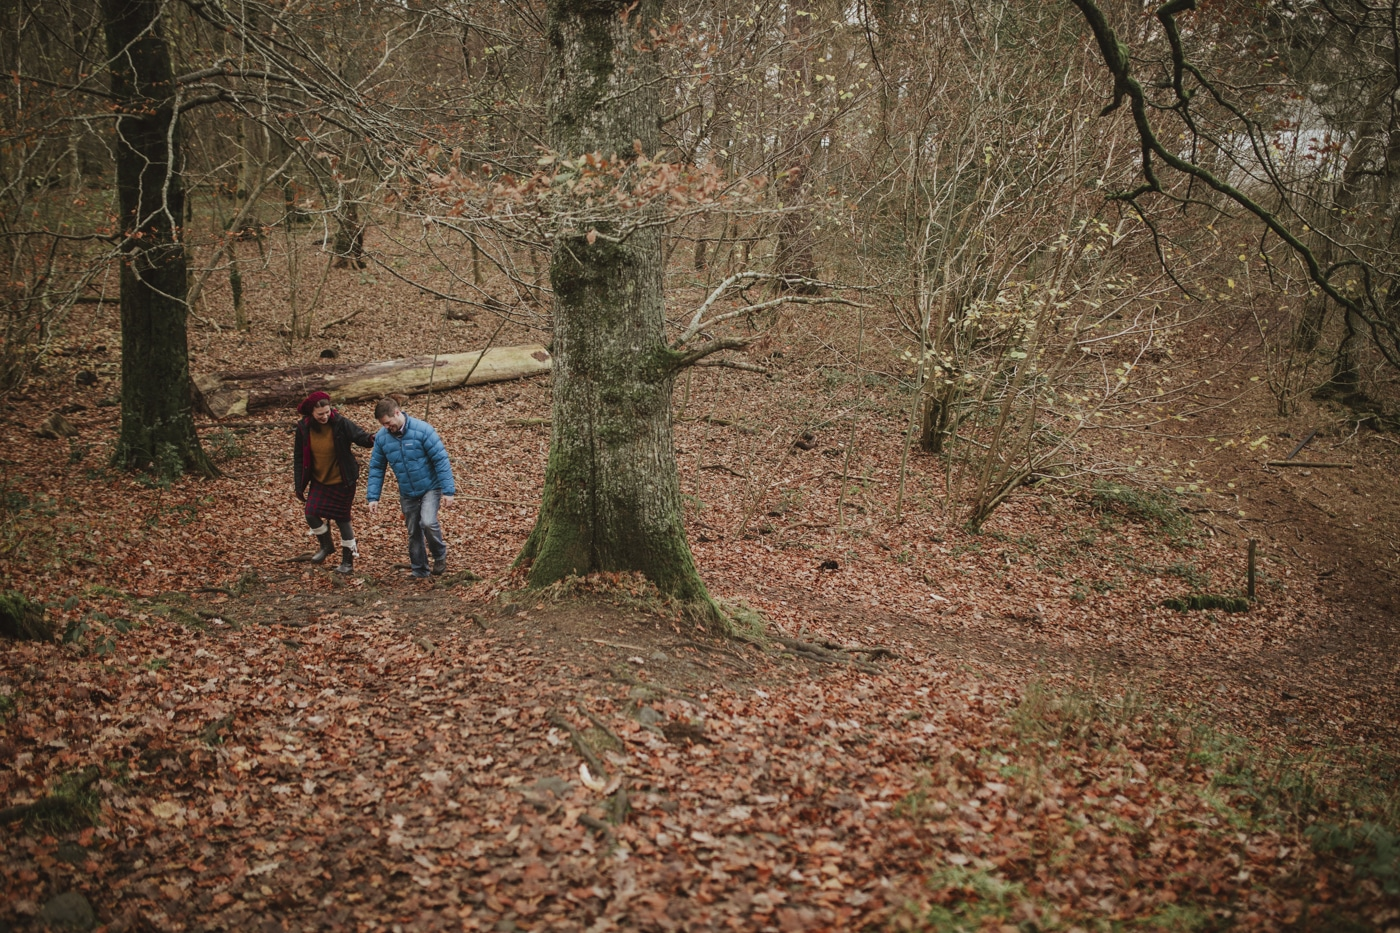 Man and woman walking among trees and leaves in Cumbria by Joshua Wyborn Photographic